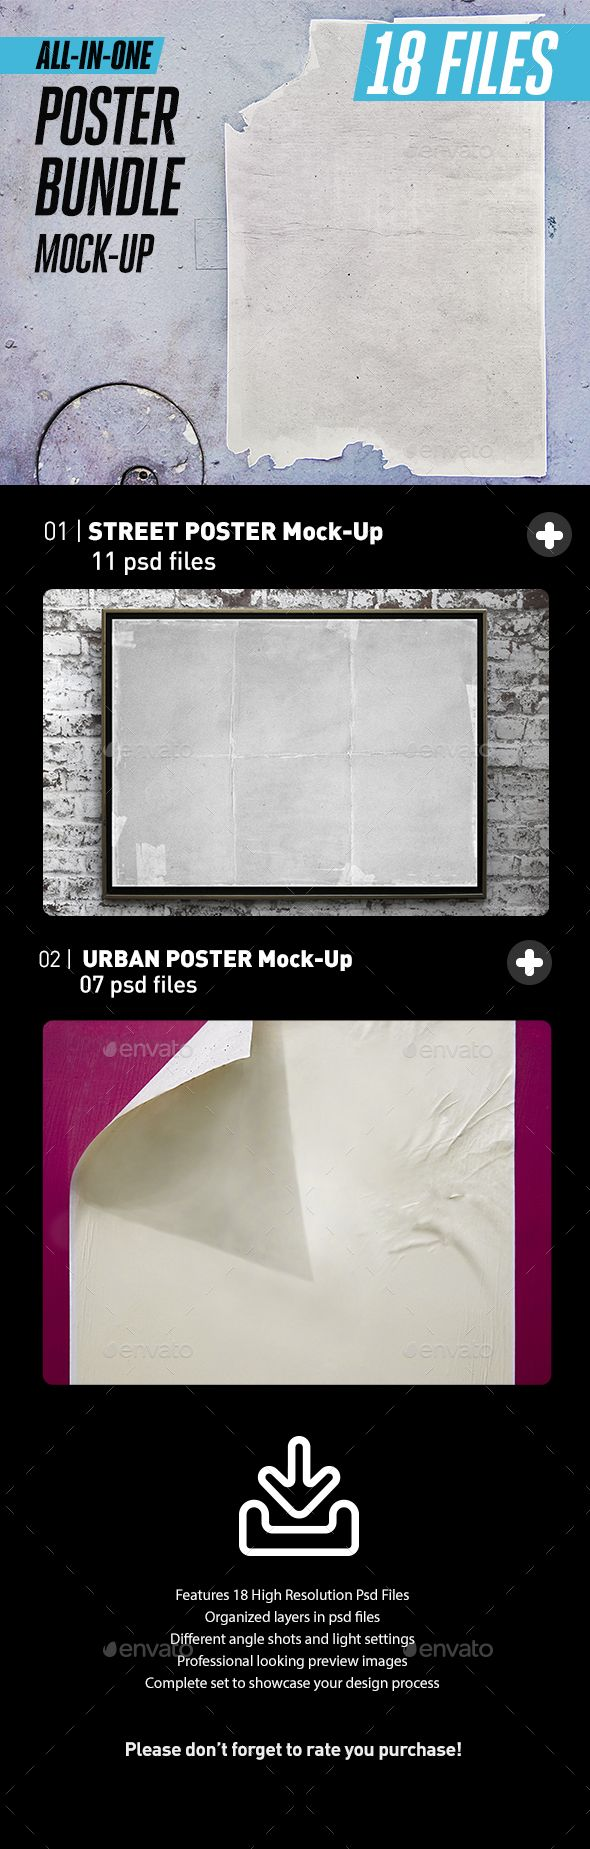 Street Urban Poster Bundle All-in-One | Mockup